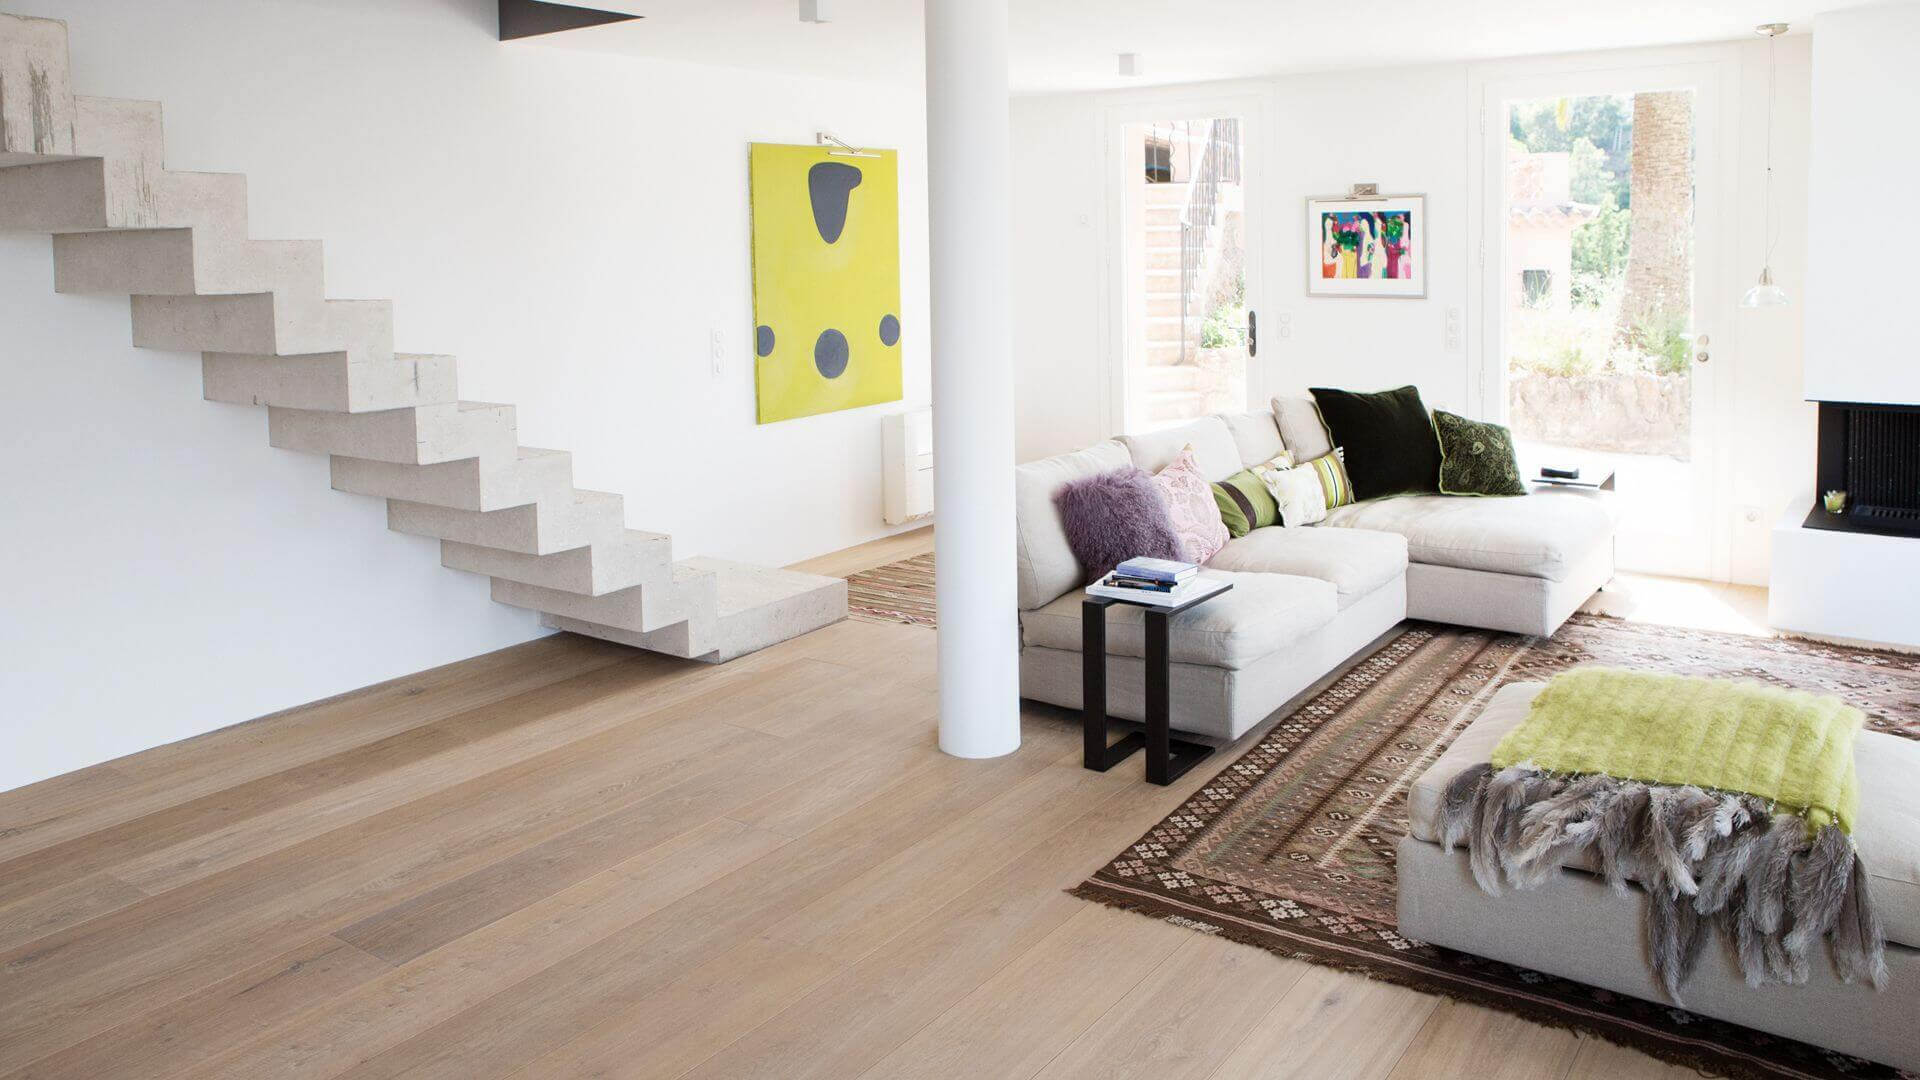 Visit us for expert advice on wood flooring in our showroom located in the heart of Amsterdam and be inspired! We can show you example floors with many color finishes and installation patterns like chevron, herringbone and other patterns. This way you can fully experience how your future wooden floor will look like. We provide you with all the information you need, like how to combine a wooden floor with underfloor heating. If you like, we can also make a free quote for you.